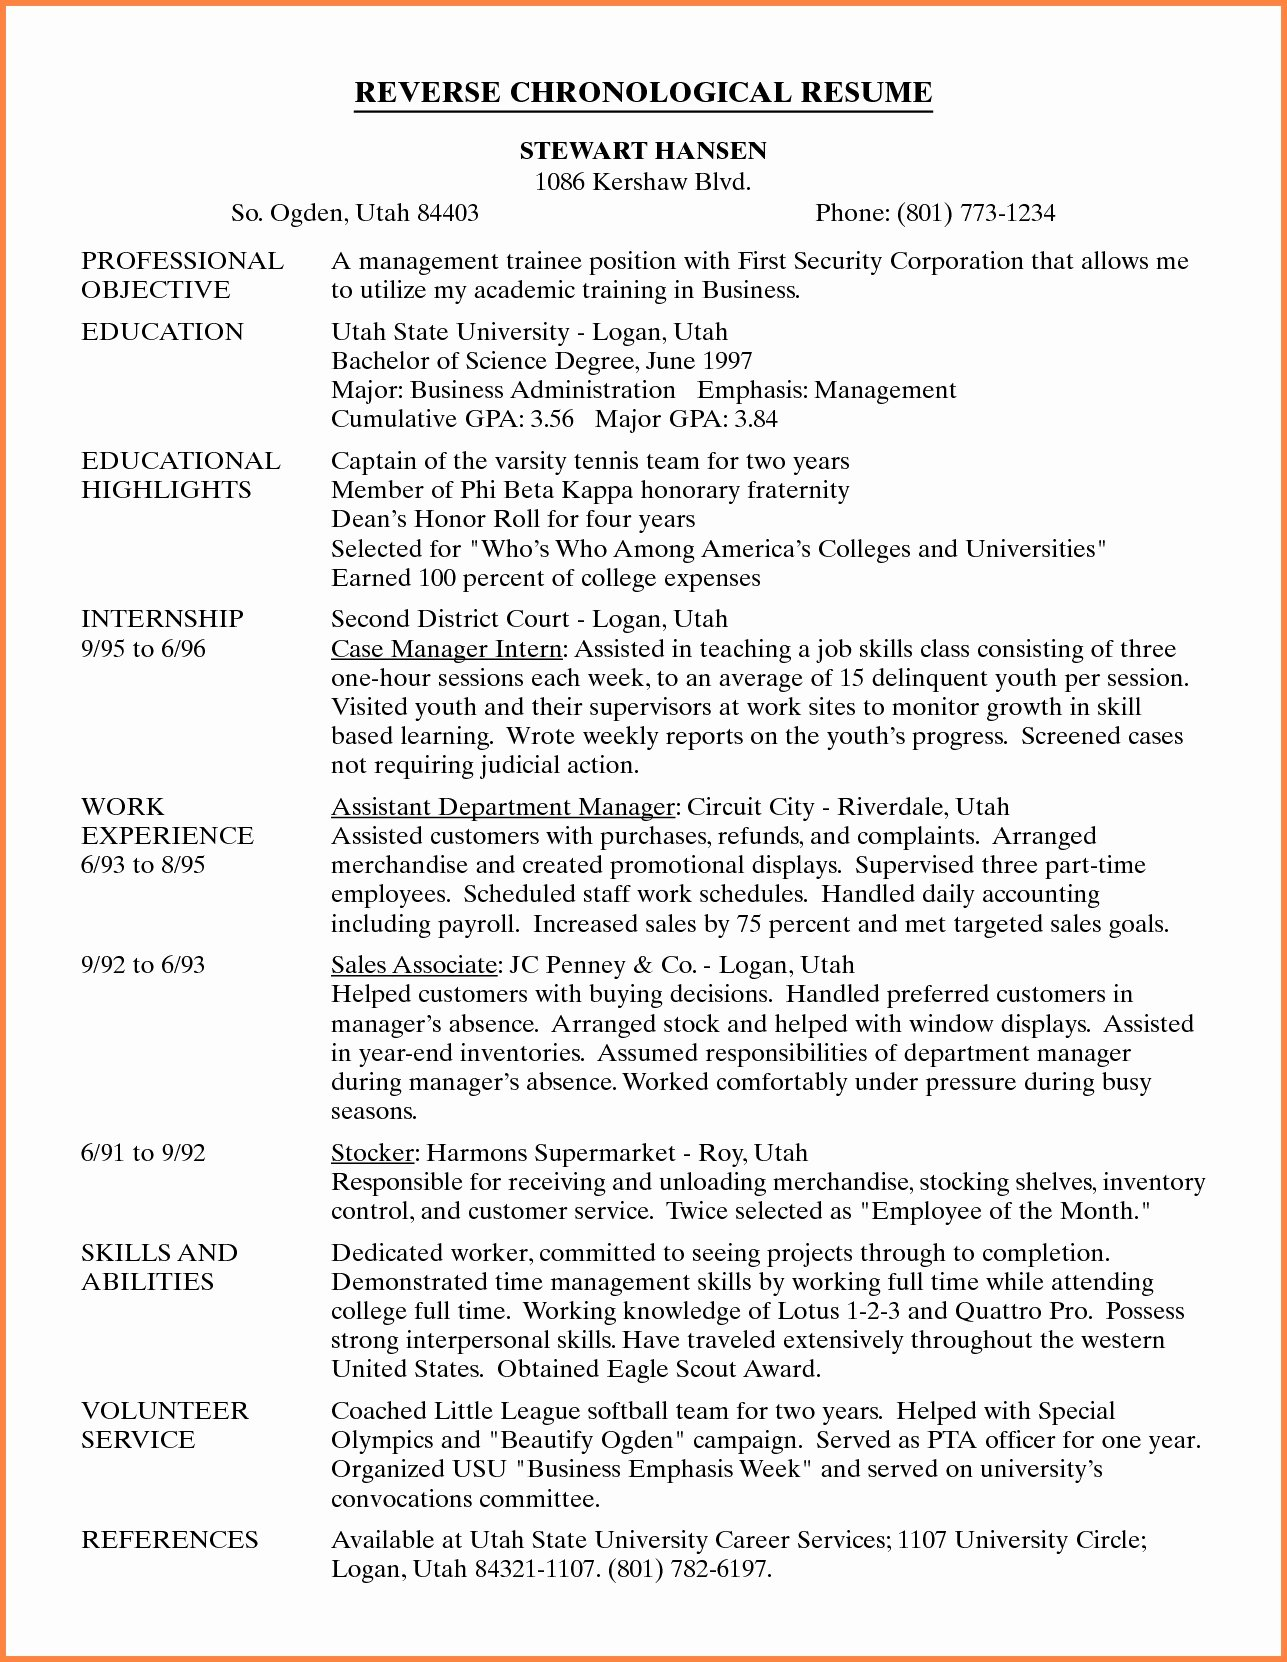 Reverse Chronological Resume Template Unique Reverse Chronological Resume All Resume Simple Resume